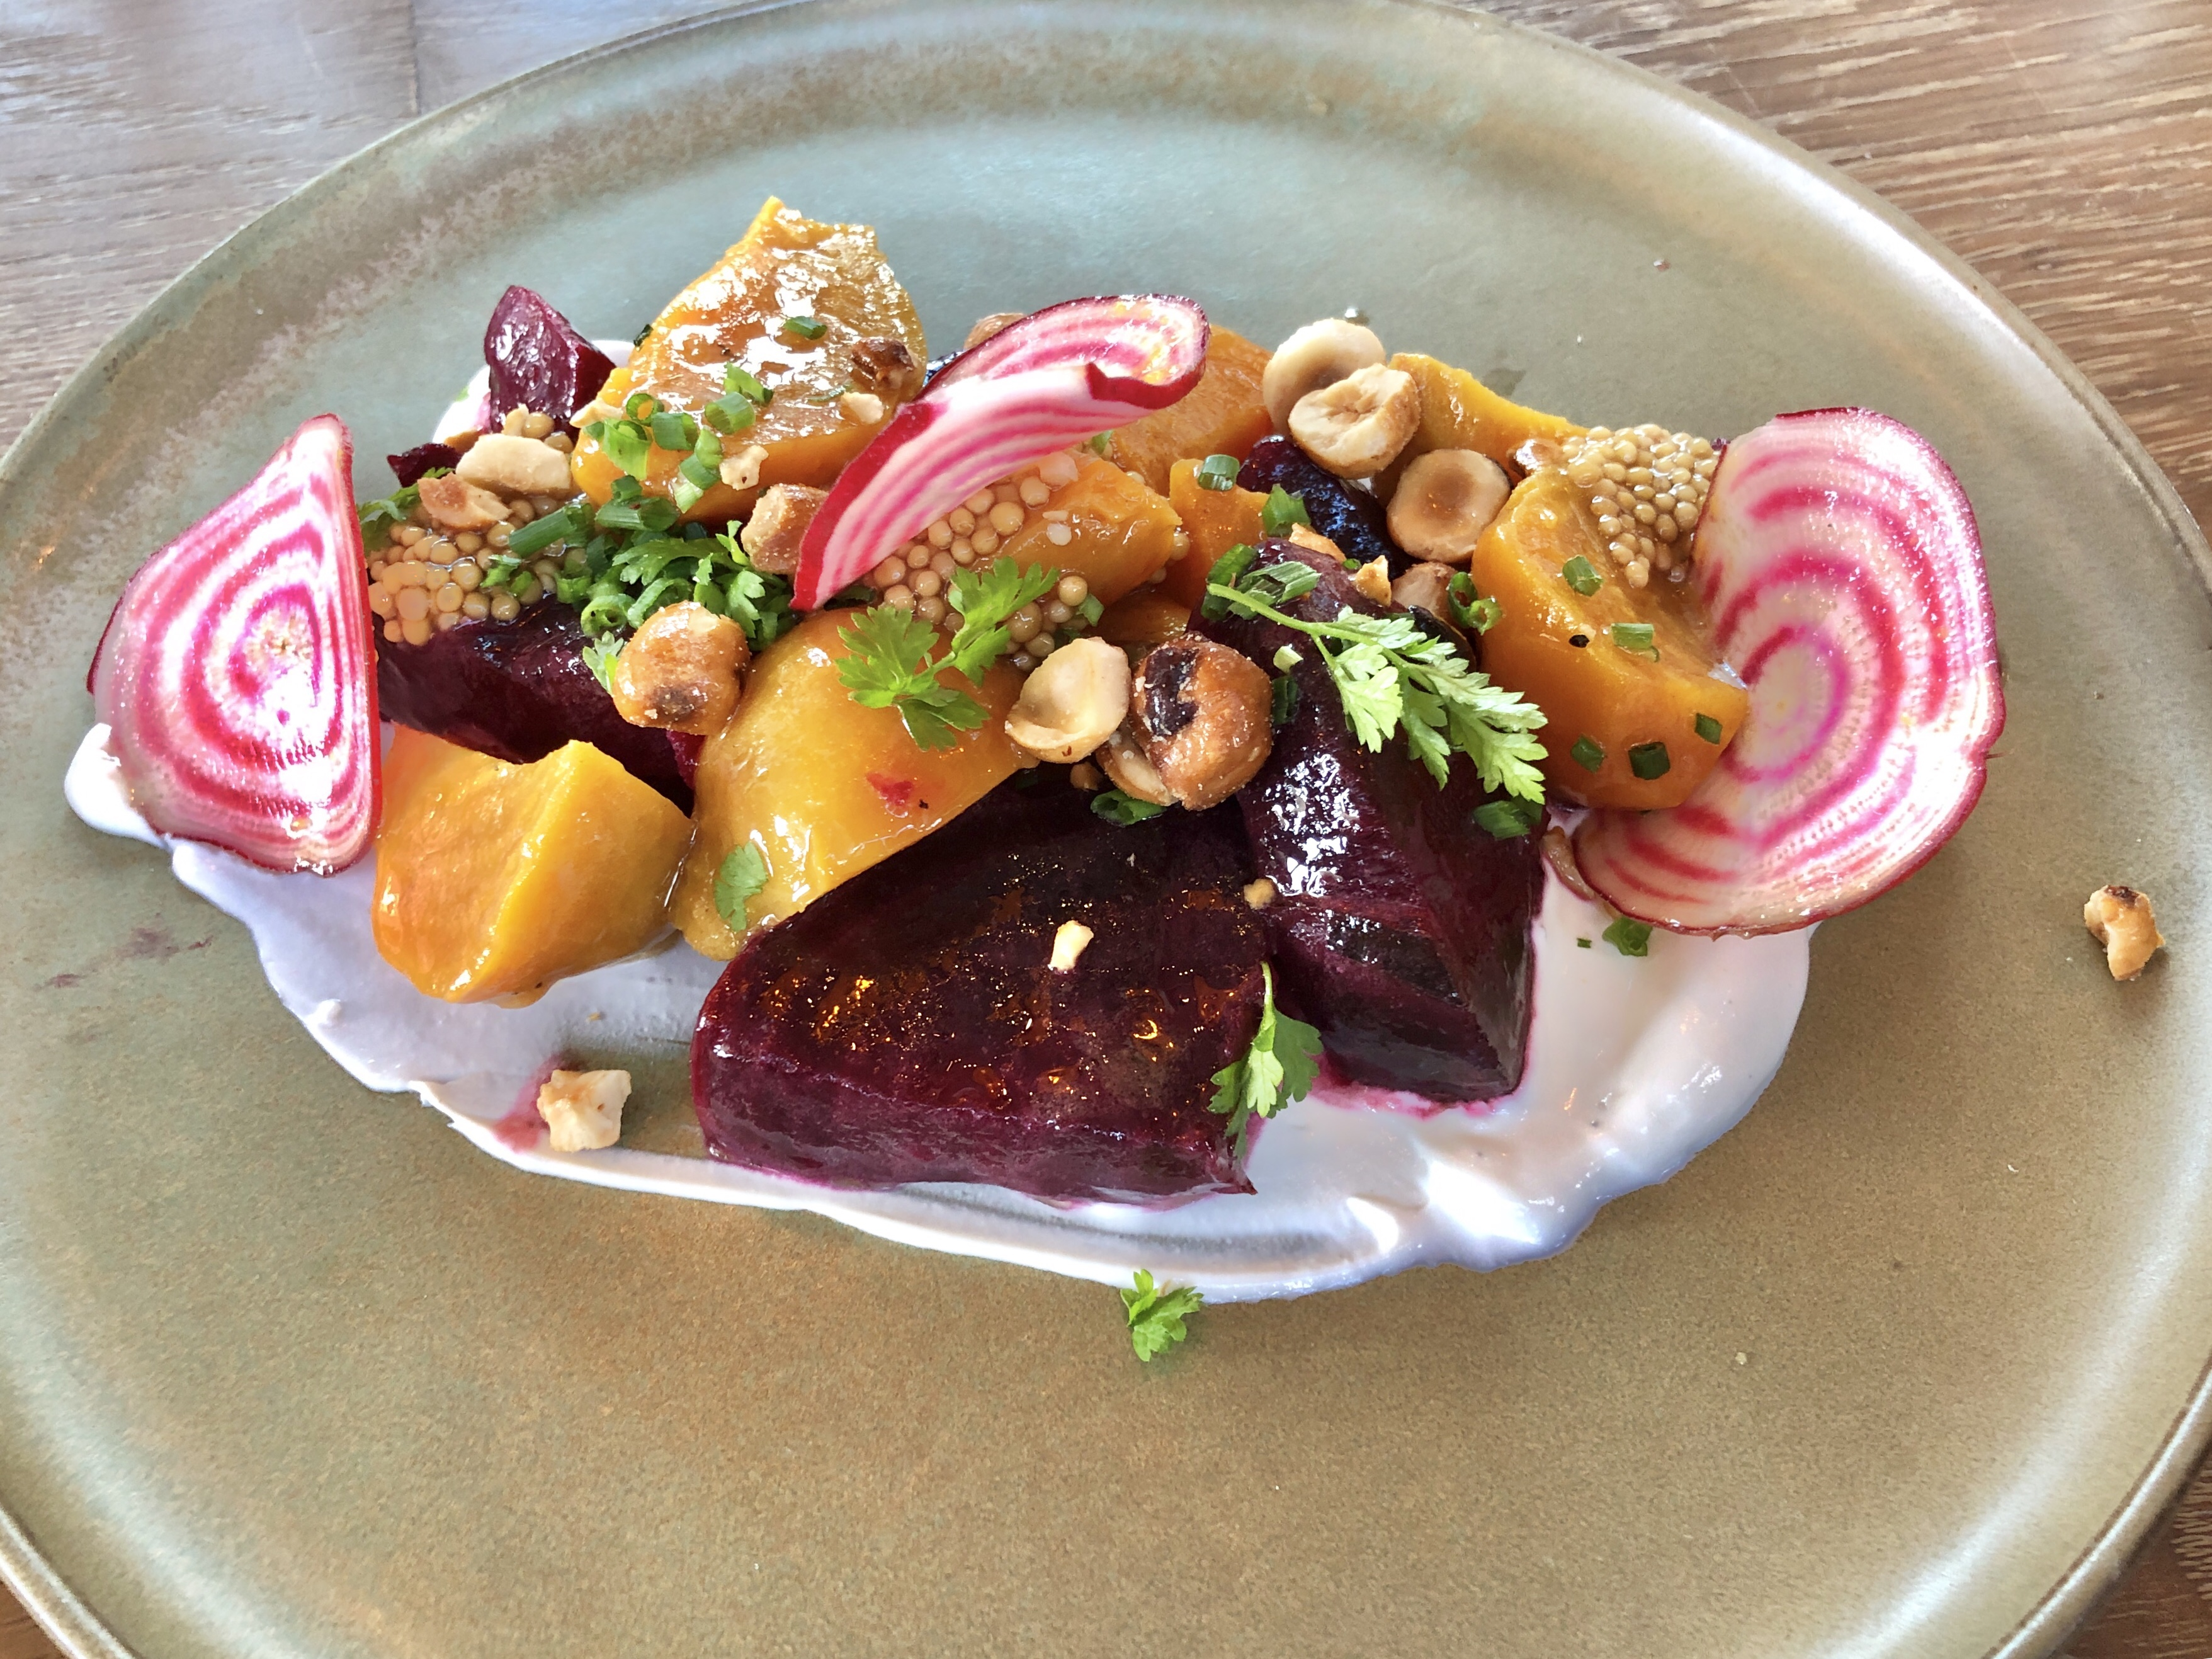 Ember-roasted beets with sheep's milk yogurt and candied hazelnuts at Rye Street Tavern in Port Covington, Baltimore, Maryland